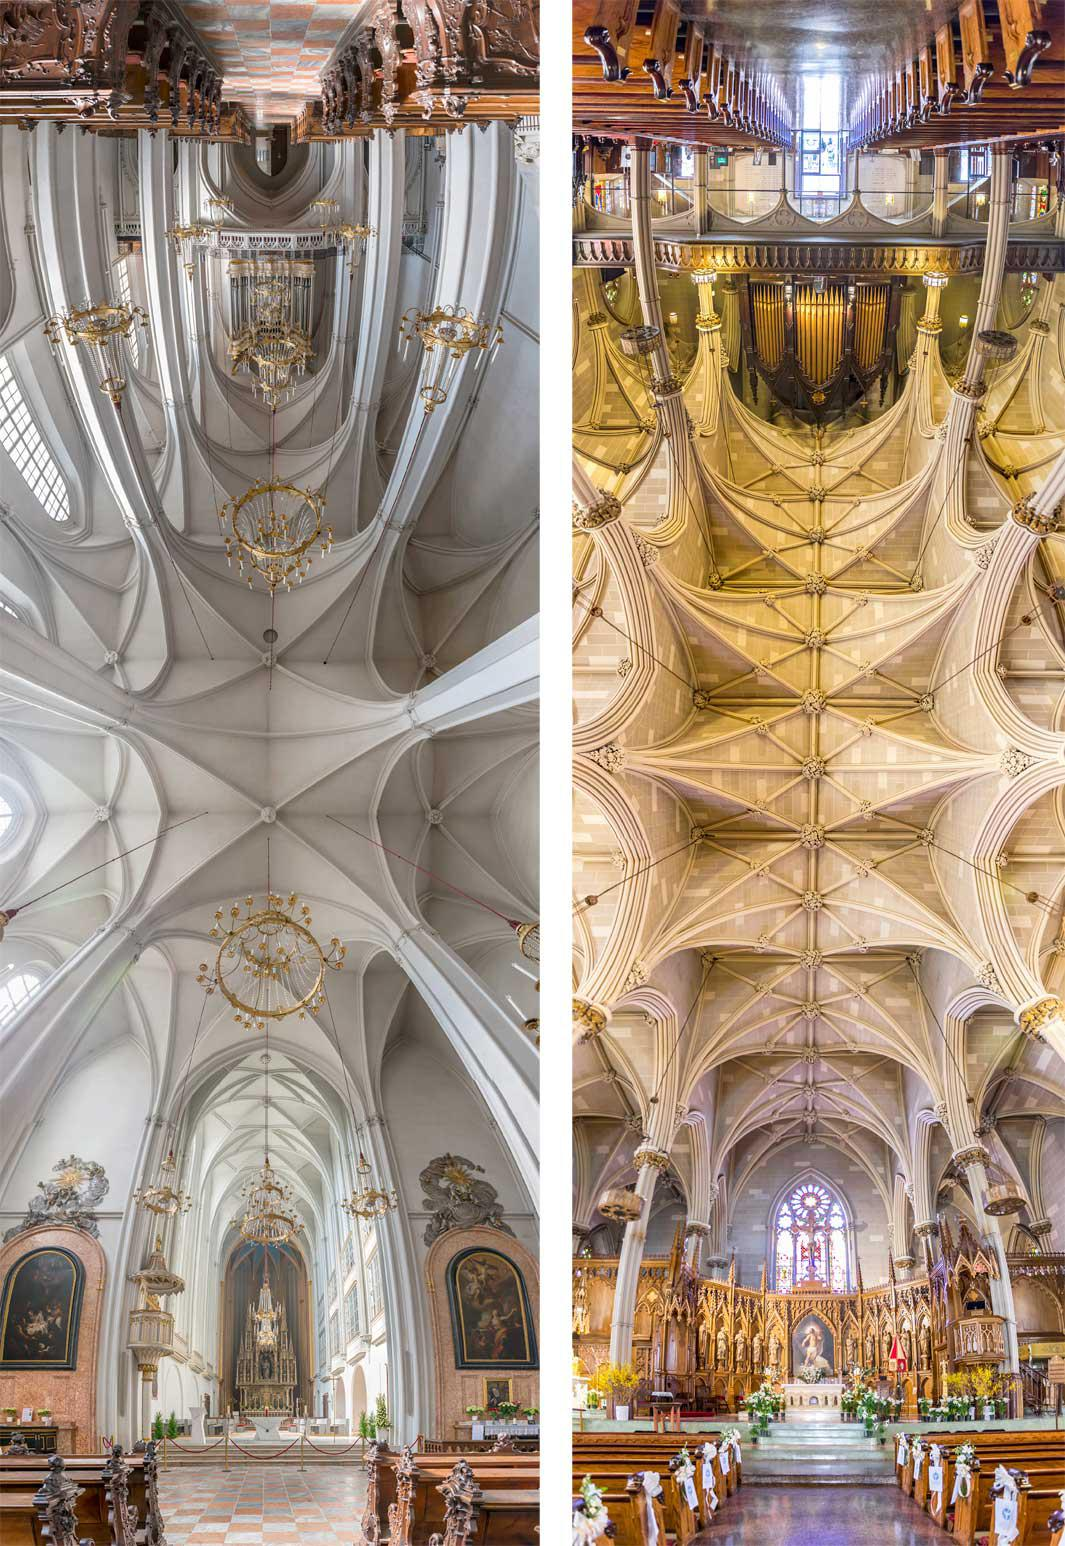 Left: Augustinian Church, Vienna. Right: The Basilica of Saint Patrick's Old Cathedral, New York